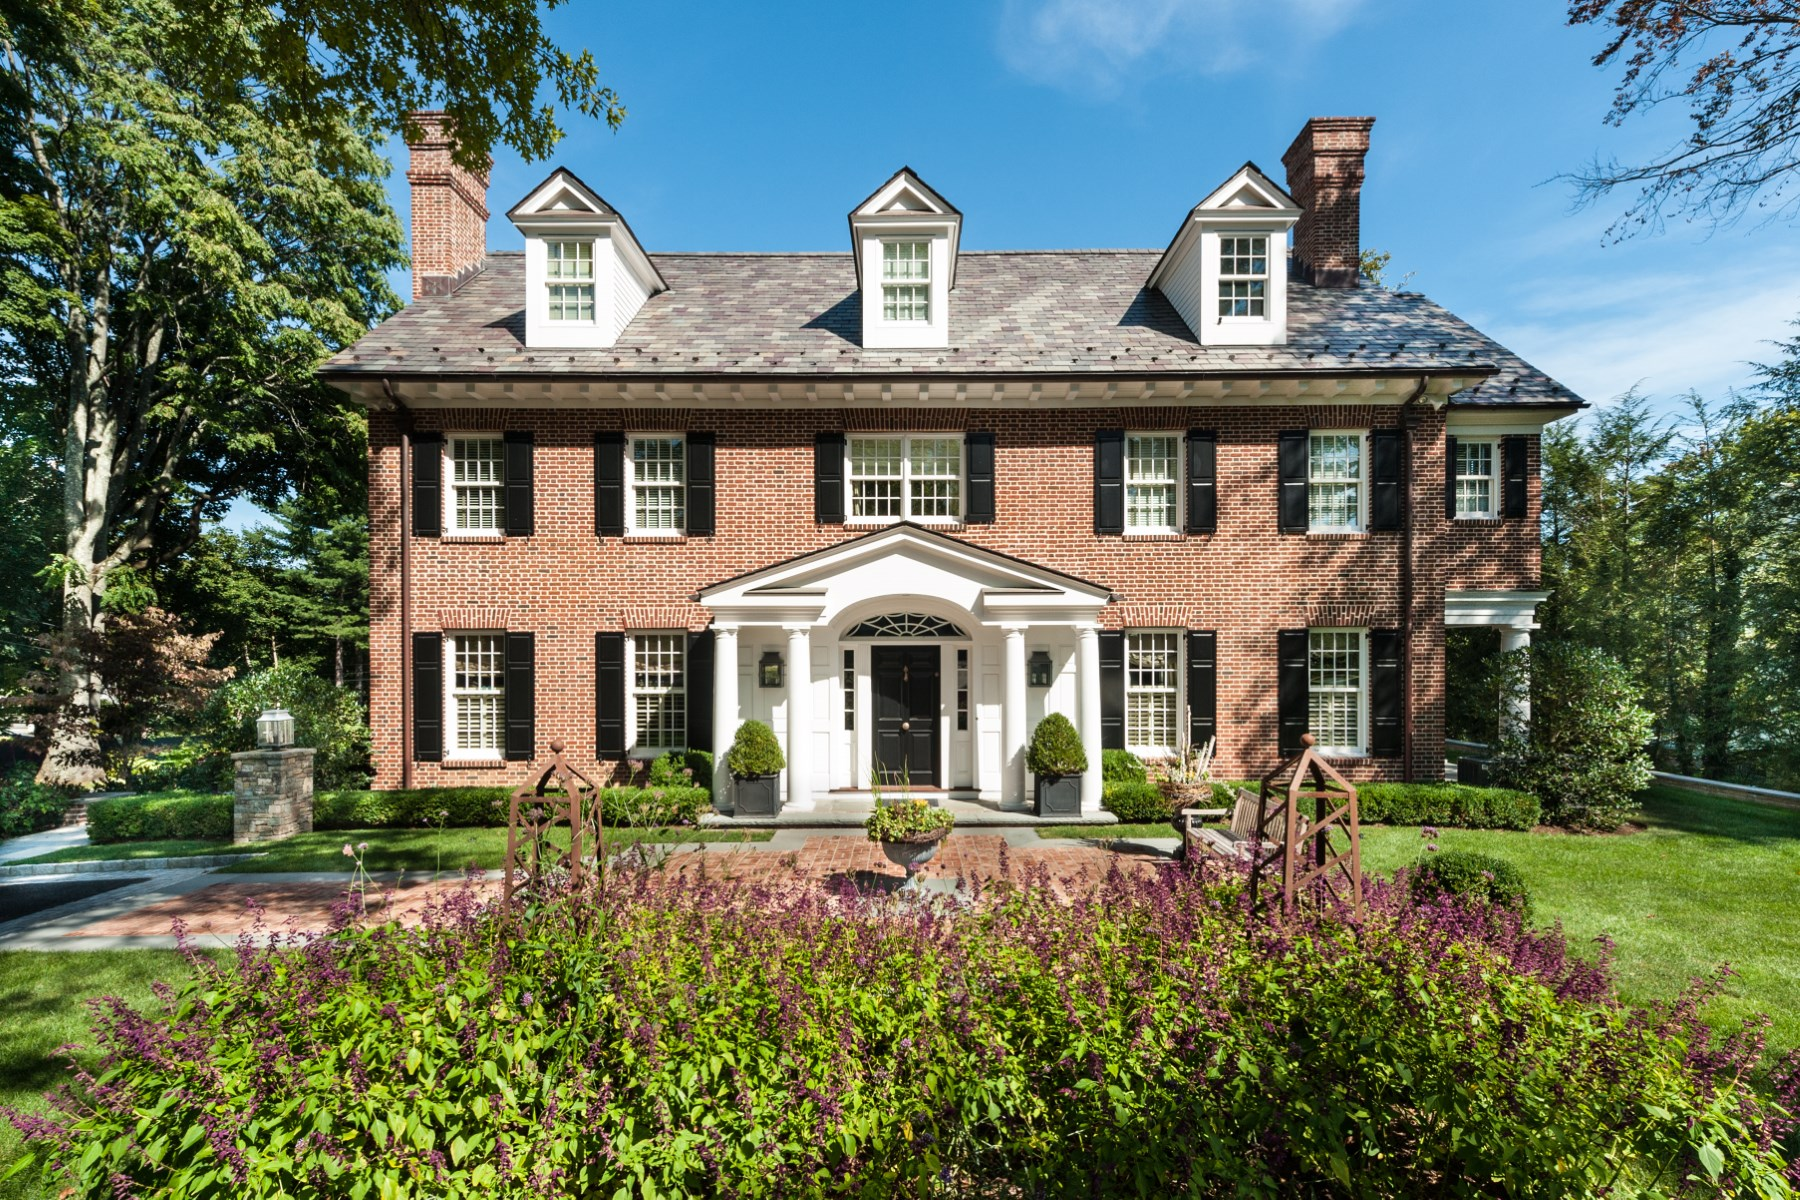 Single Family Home for Sale at Timeless Beauty 77 Maple Avenue South Of Parkway, Greenwich, Connecticut, 06830 United States